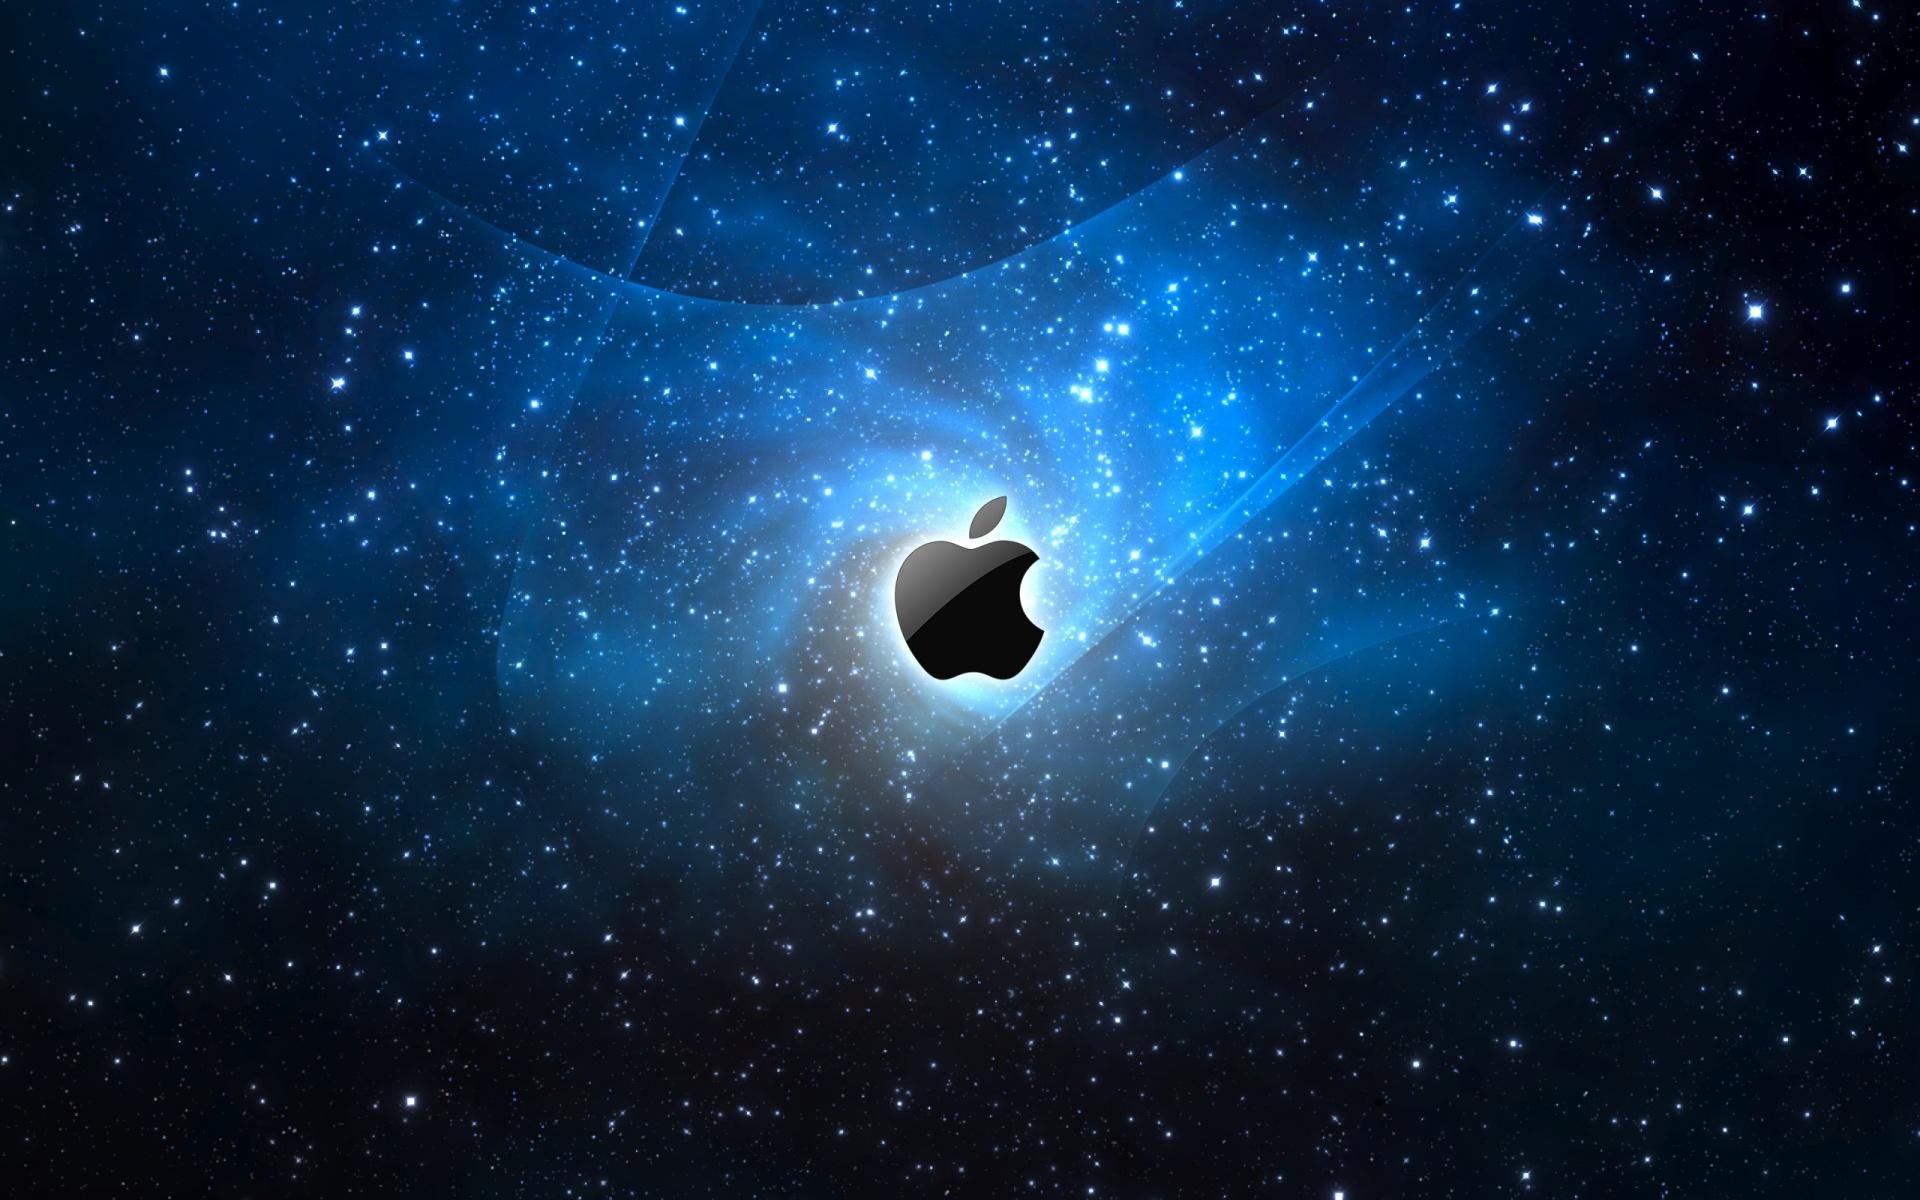 Apple Galaxy Full HD Desktop Wallpapers 1080p 1920x1200